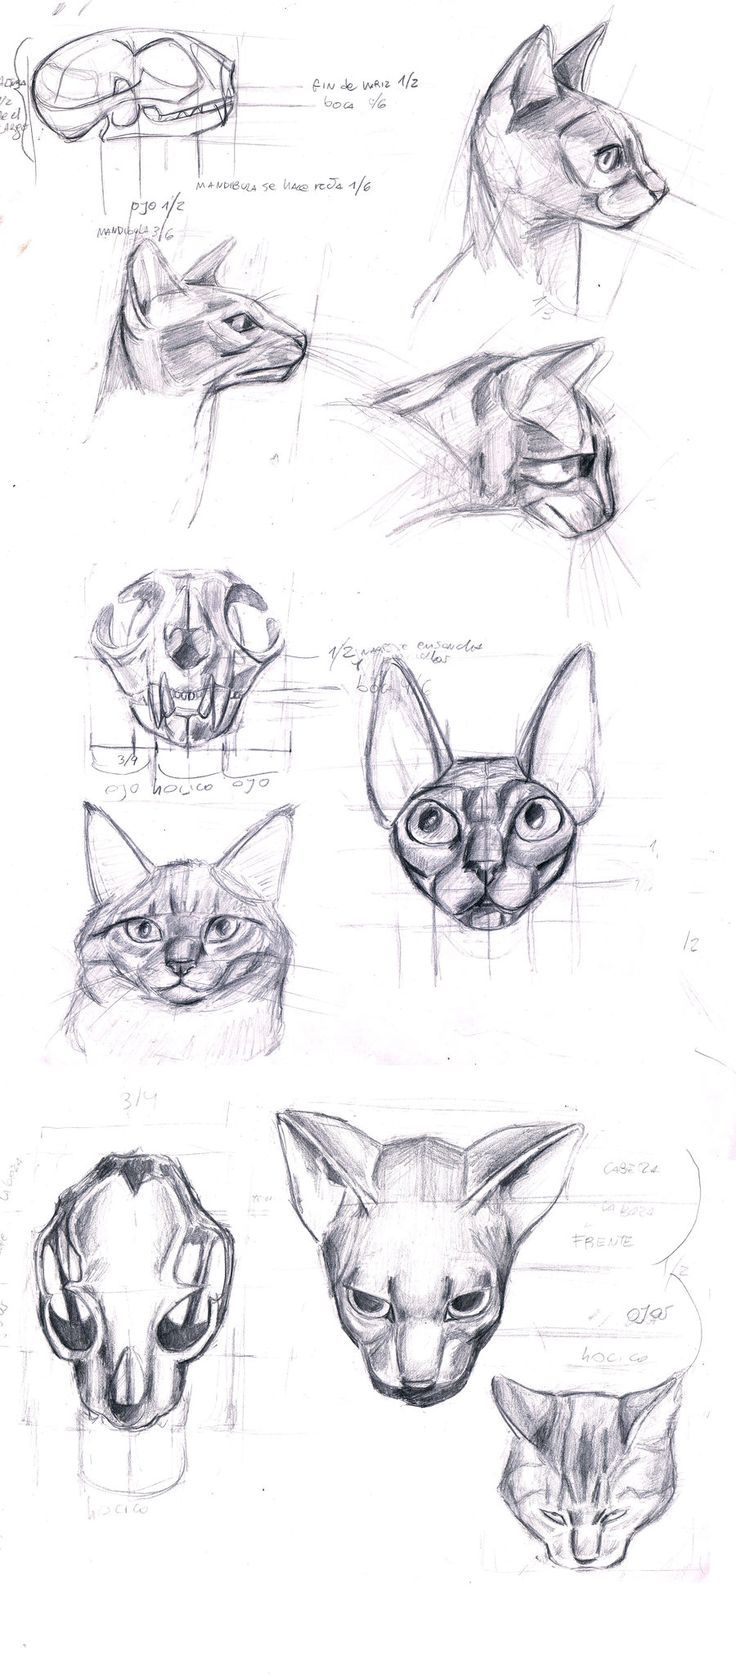 Anatomy Of The Cat S Head By Sofmer On Deviantart Katze